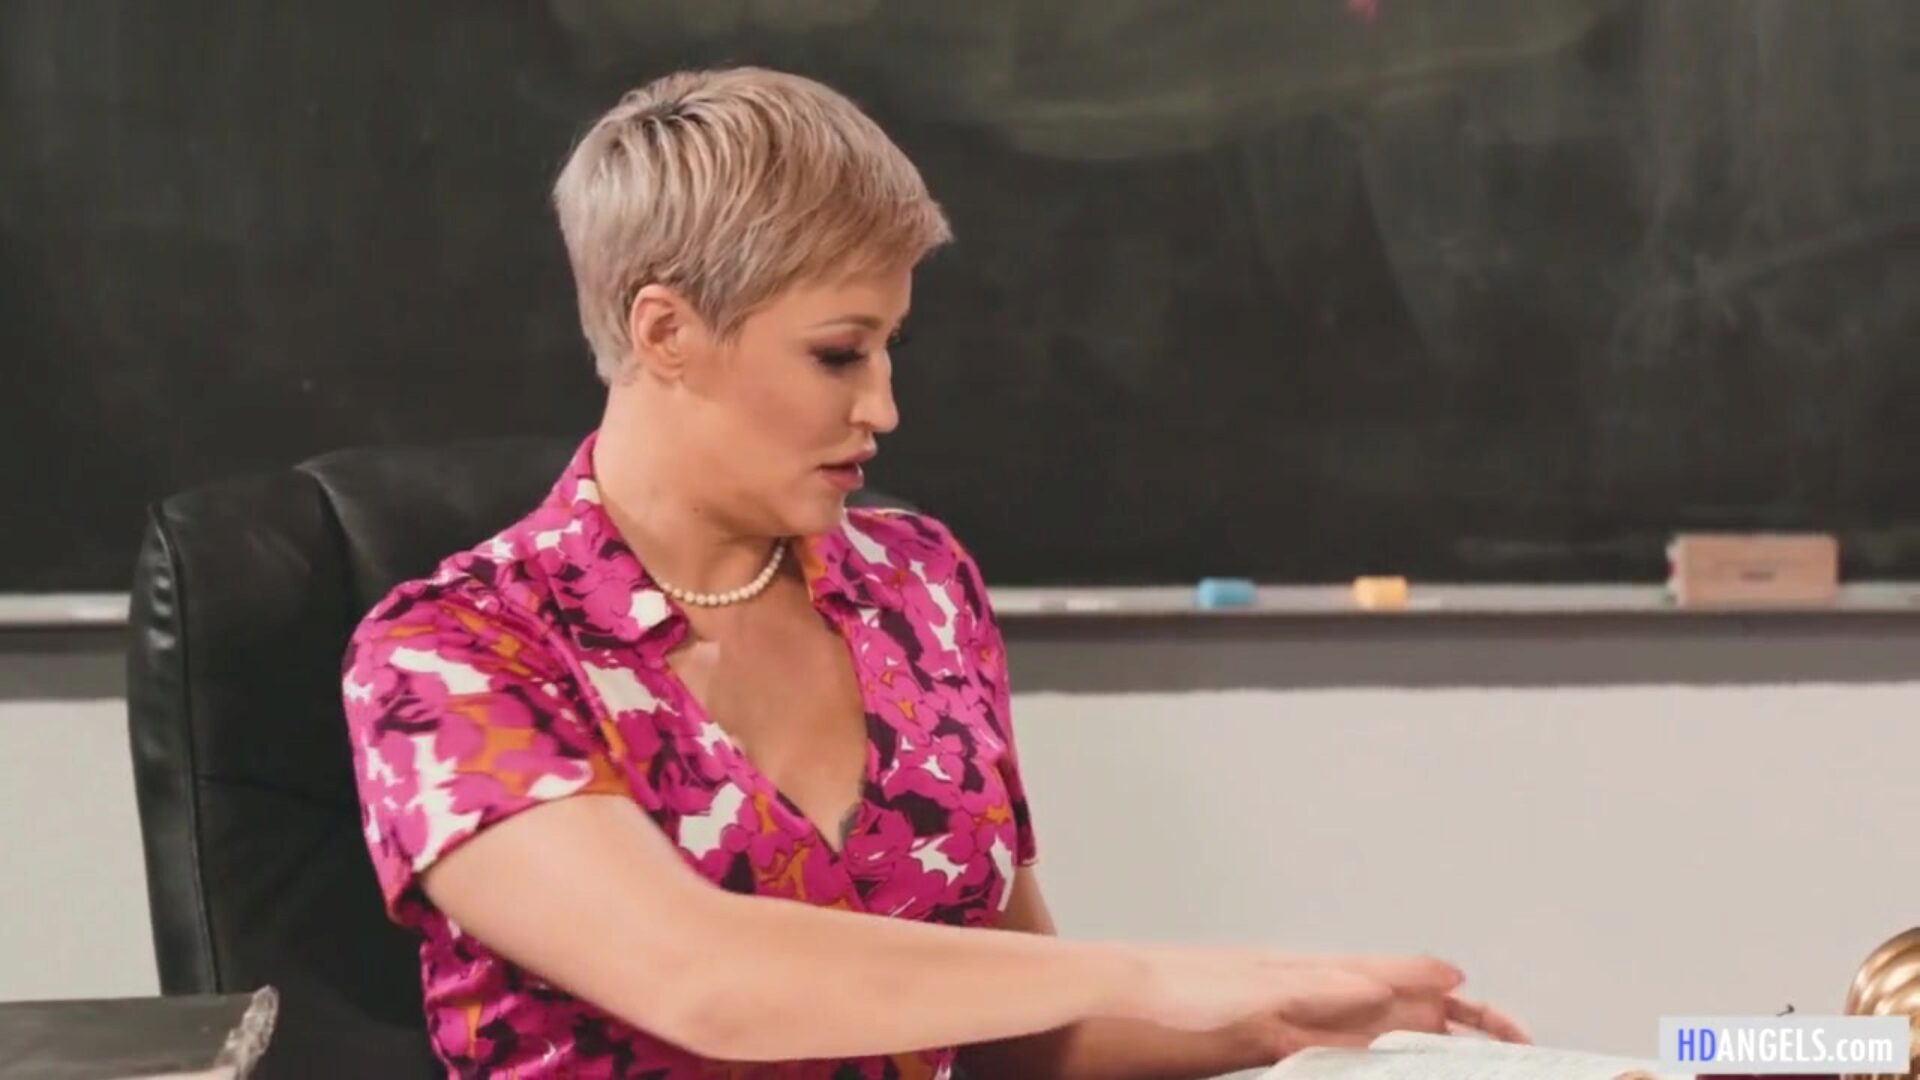 I'm Teacher And You're My Student, Eliza! (Lesbian Sex) One day, Eliza makes a budge on Ryan. Ryan is averse but wanting to boost Eliza's confidence, assents pulling the schoolgirl in for a ardent kiss